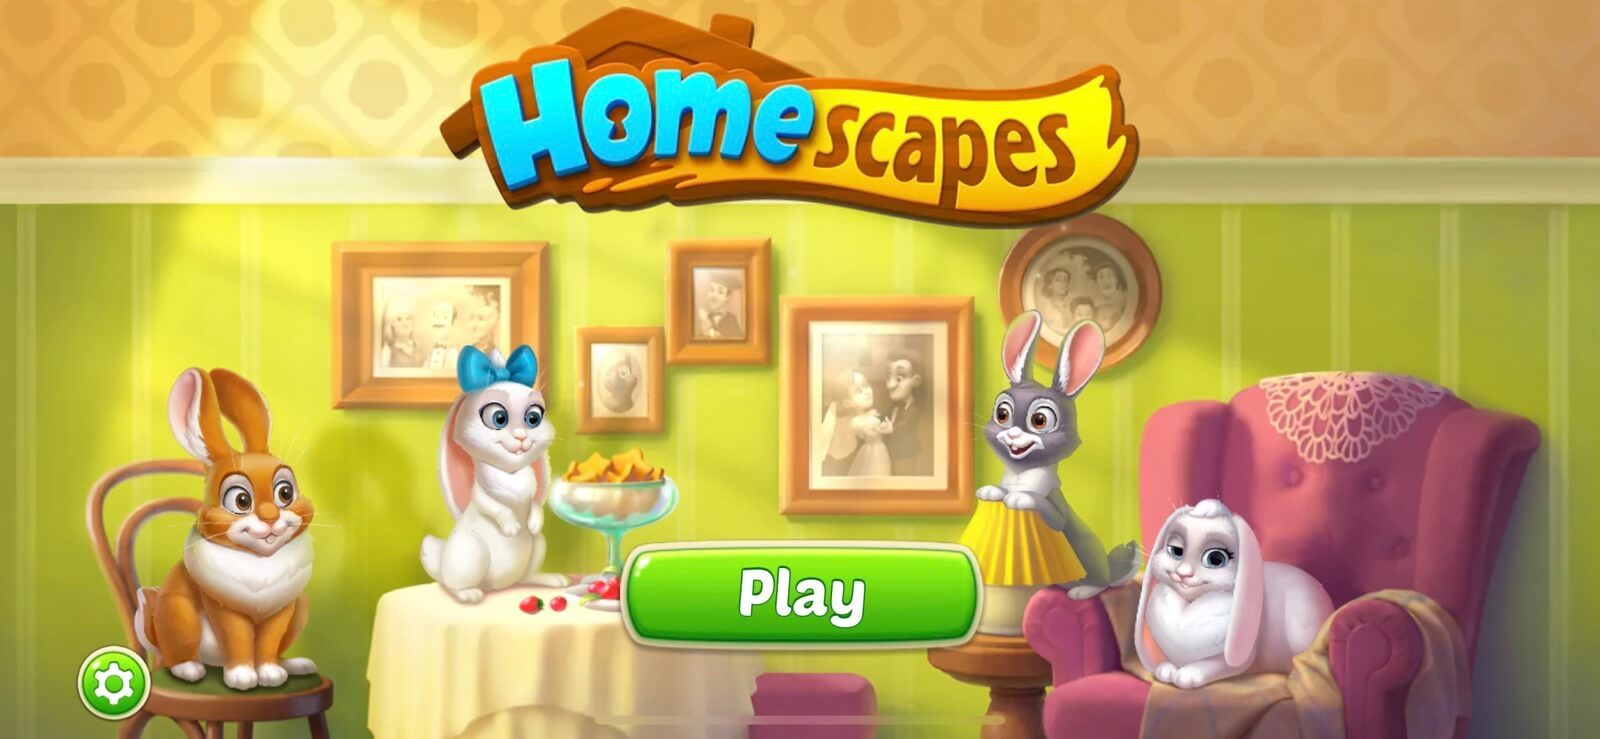 Homescapes - Tips To Improve Your In-game Experience